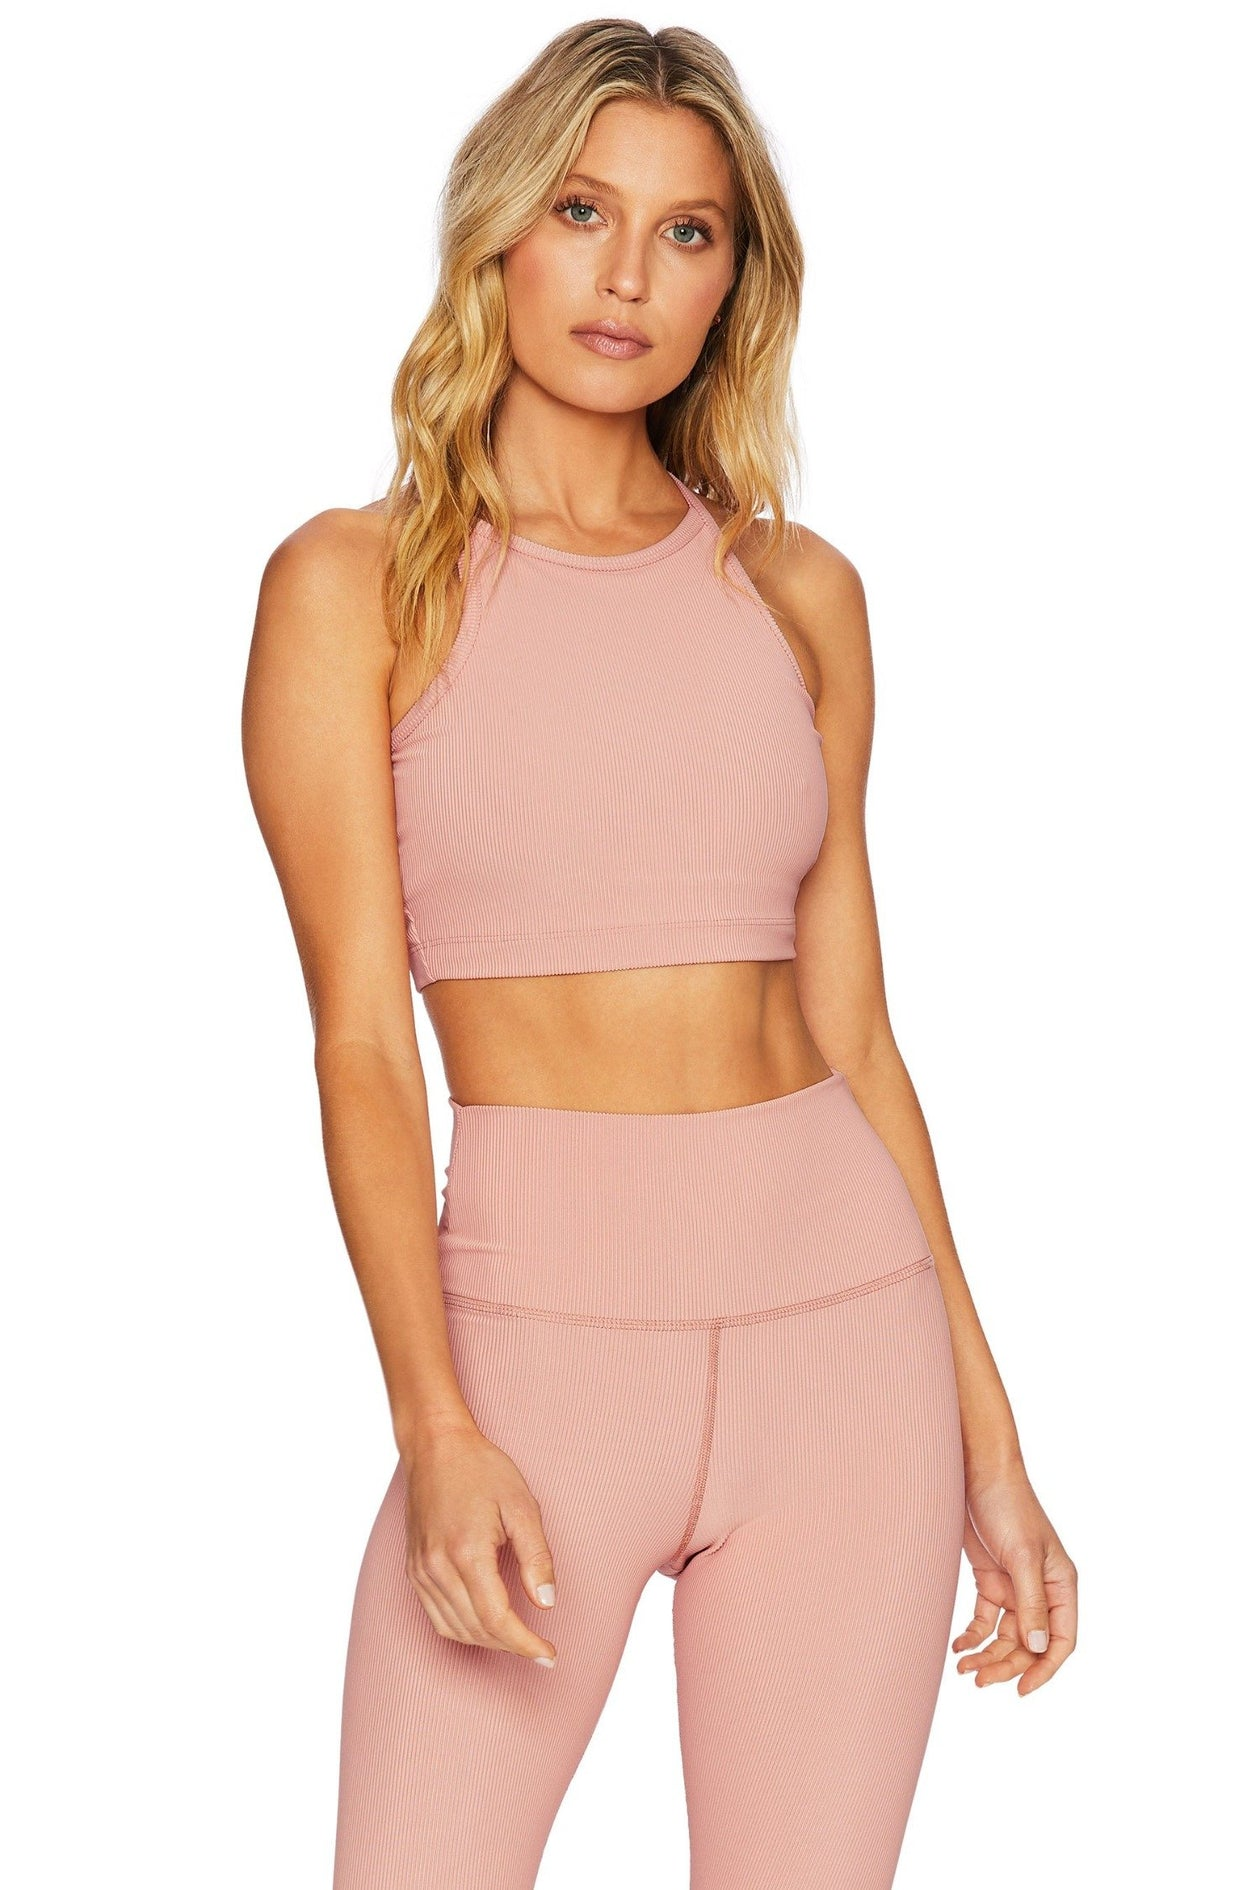 Anna Tank - Pink | Beach Riot - Fall 2020 - Women's Activewear